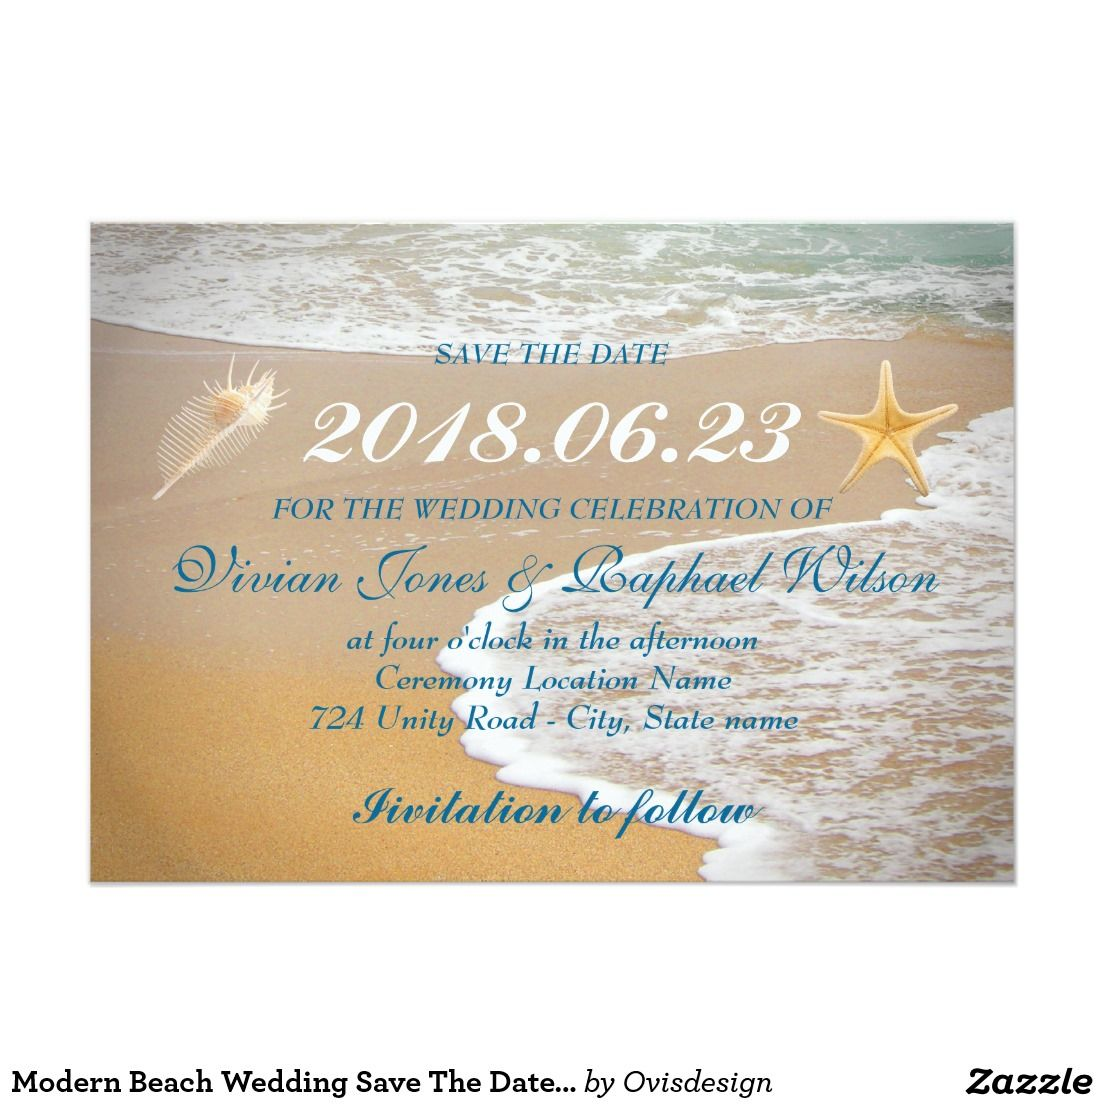 Modern Beach Wedding Save The Date Card | beach wedding | Pinterest ...